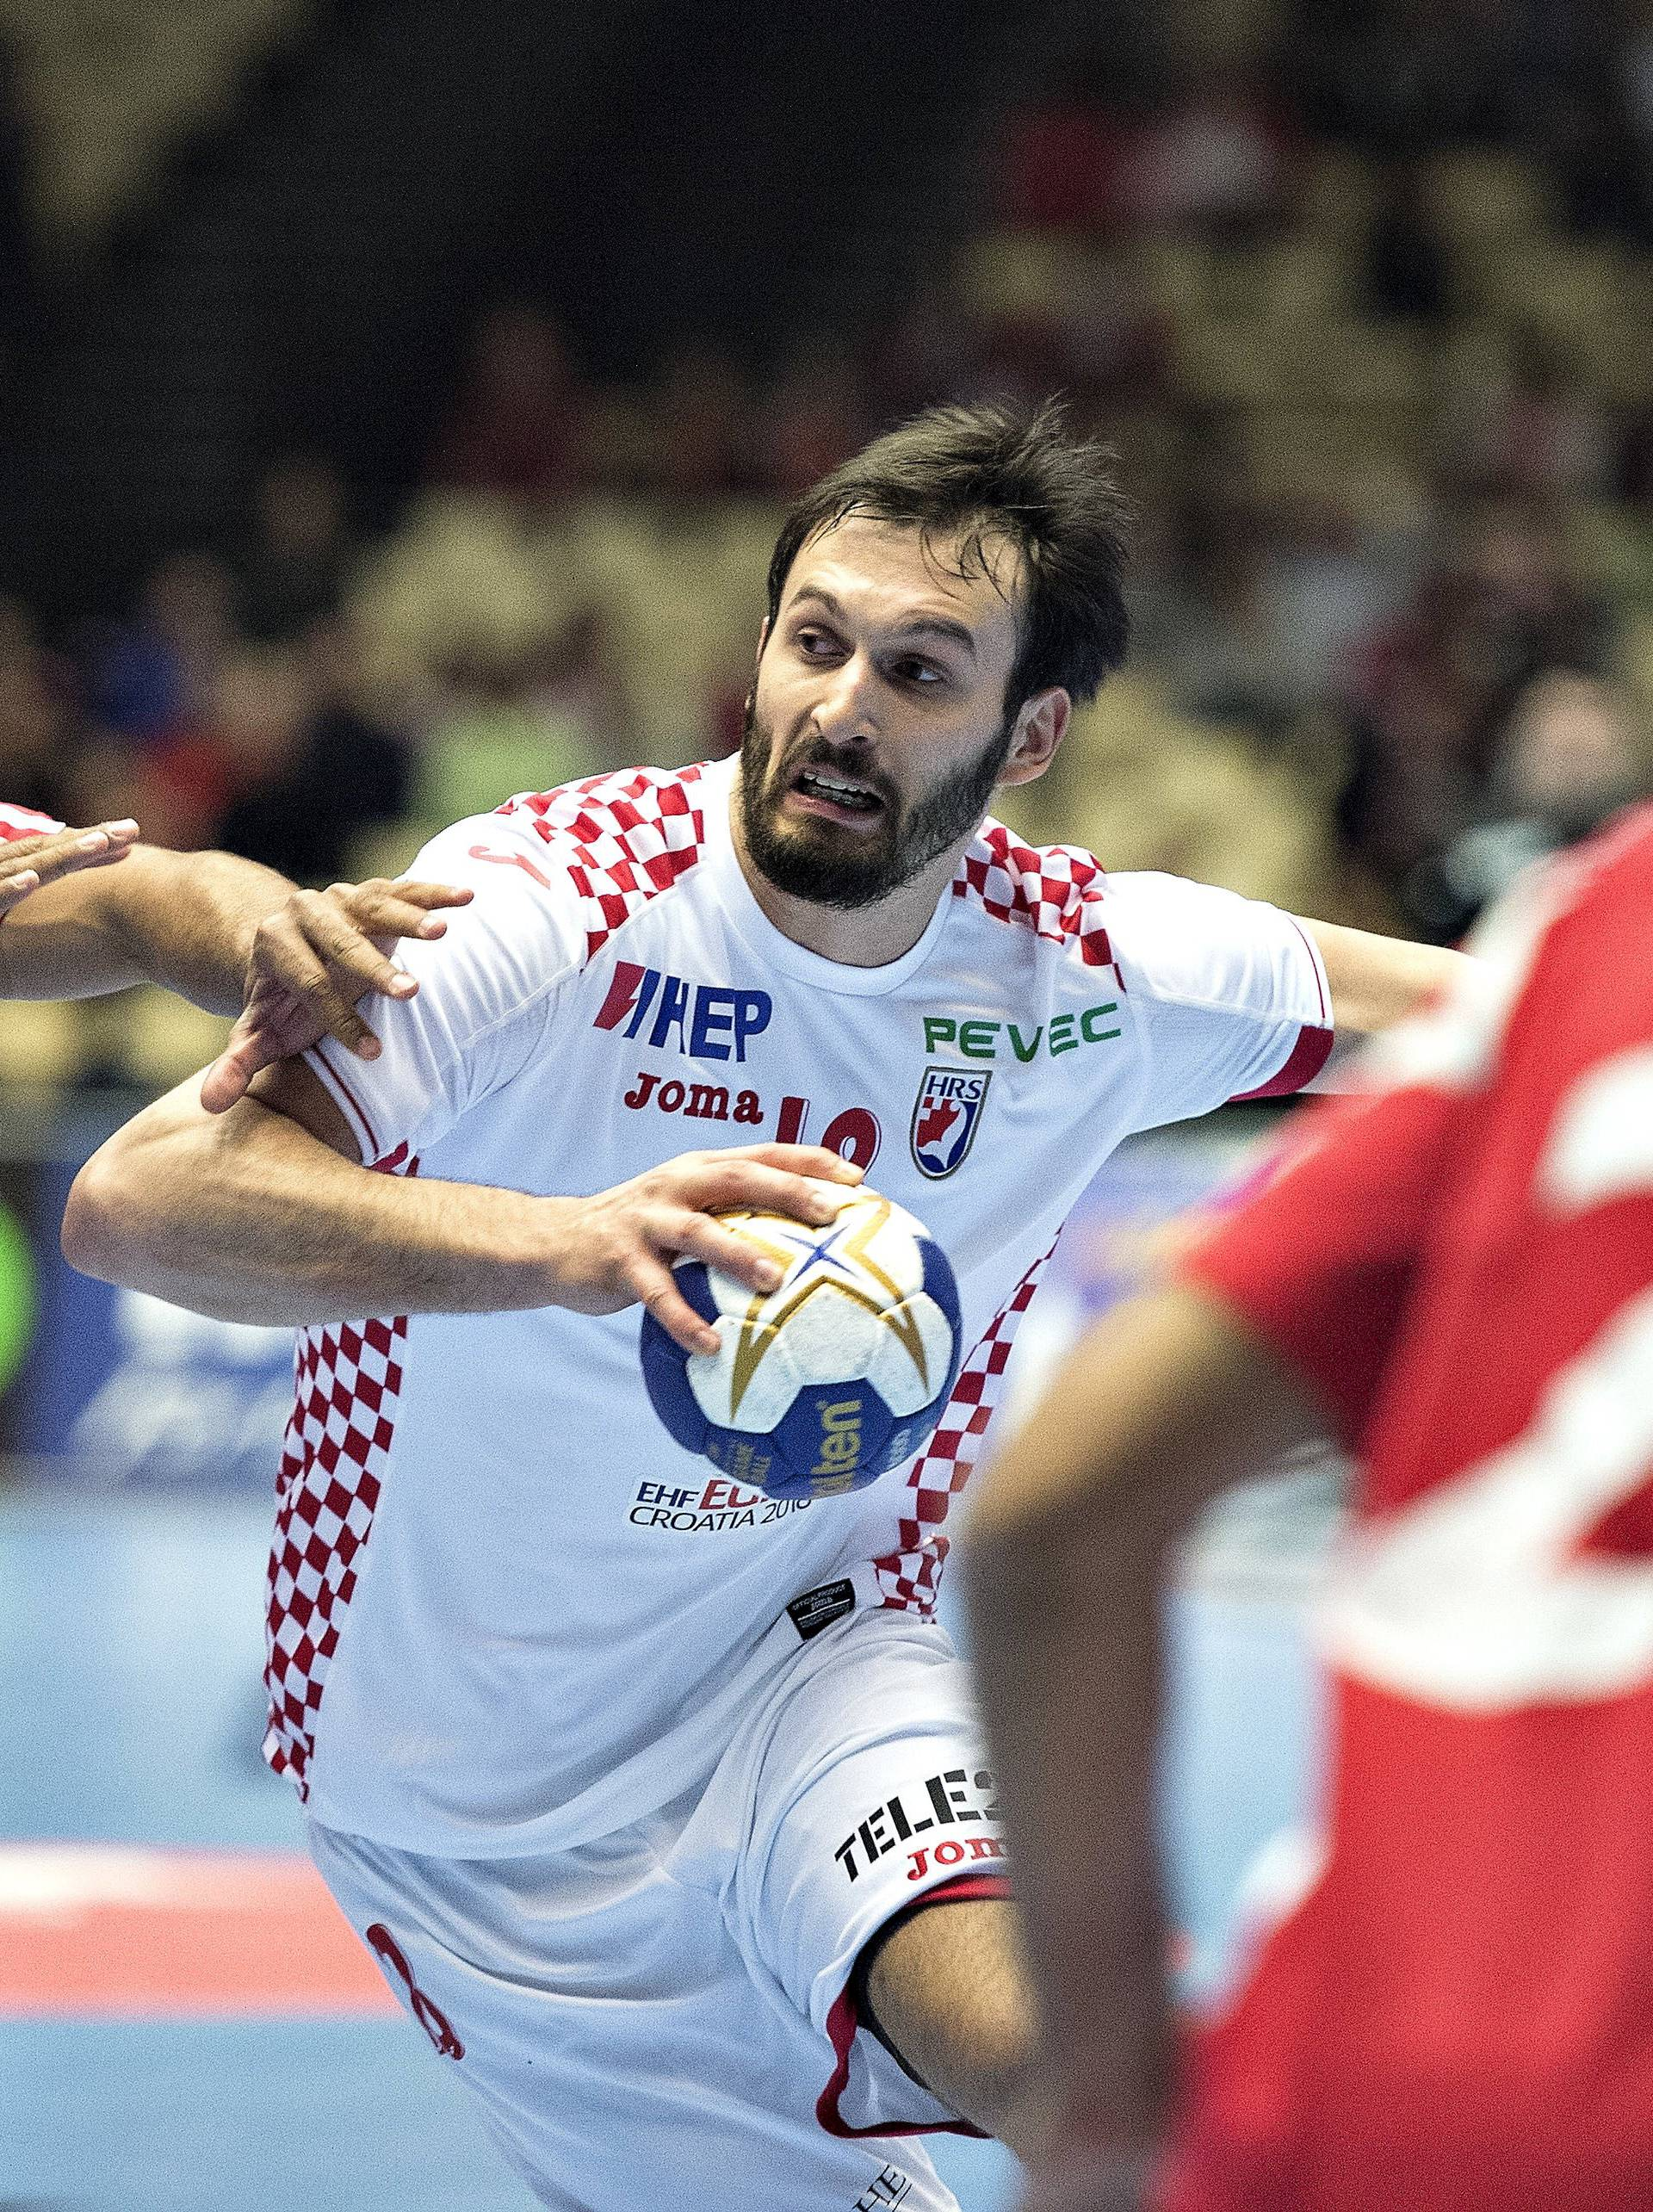 Habib Mohamed of Bahrain and Igor Karaci of Croatia in action during their men's handball Olympic qualification match in Boxen